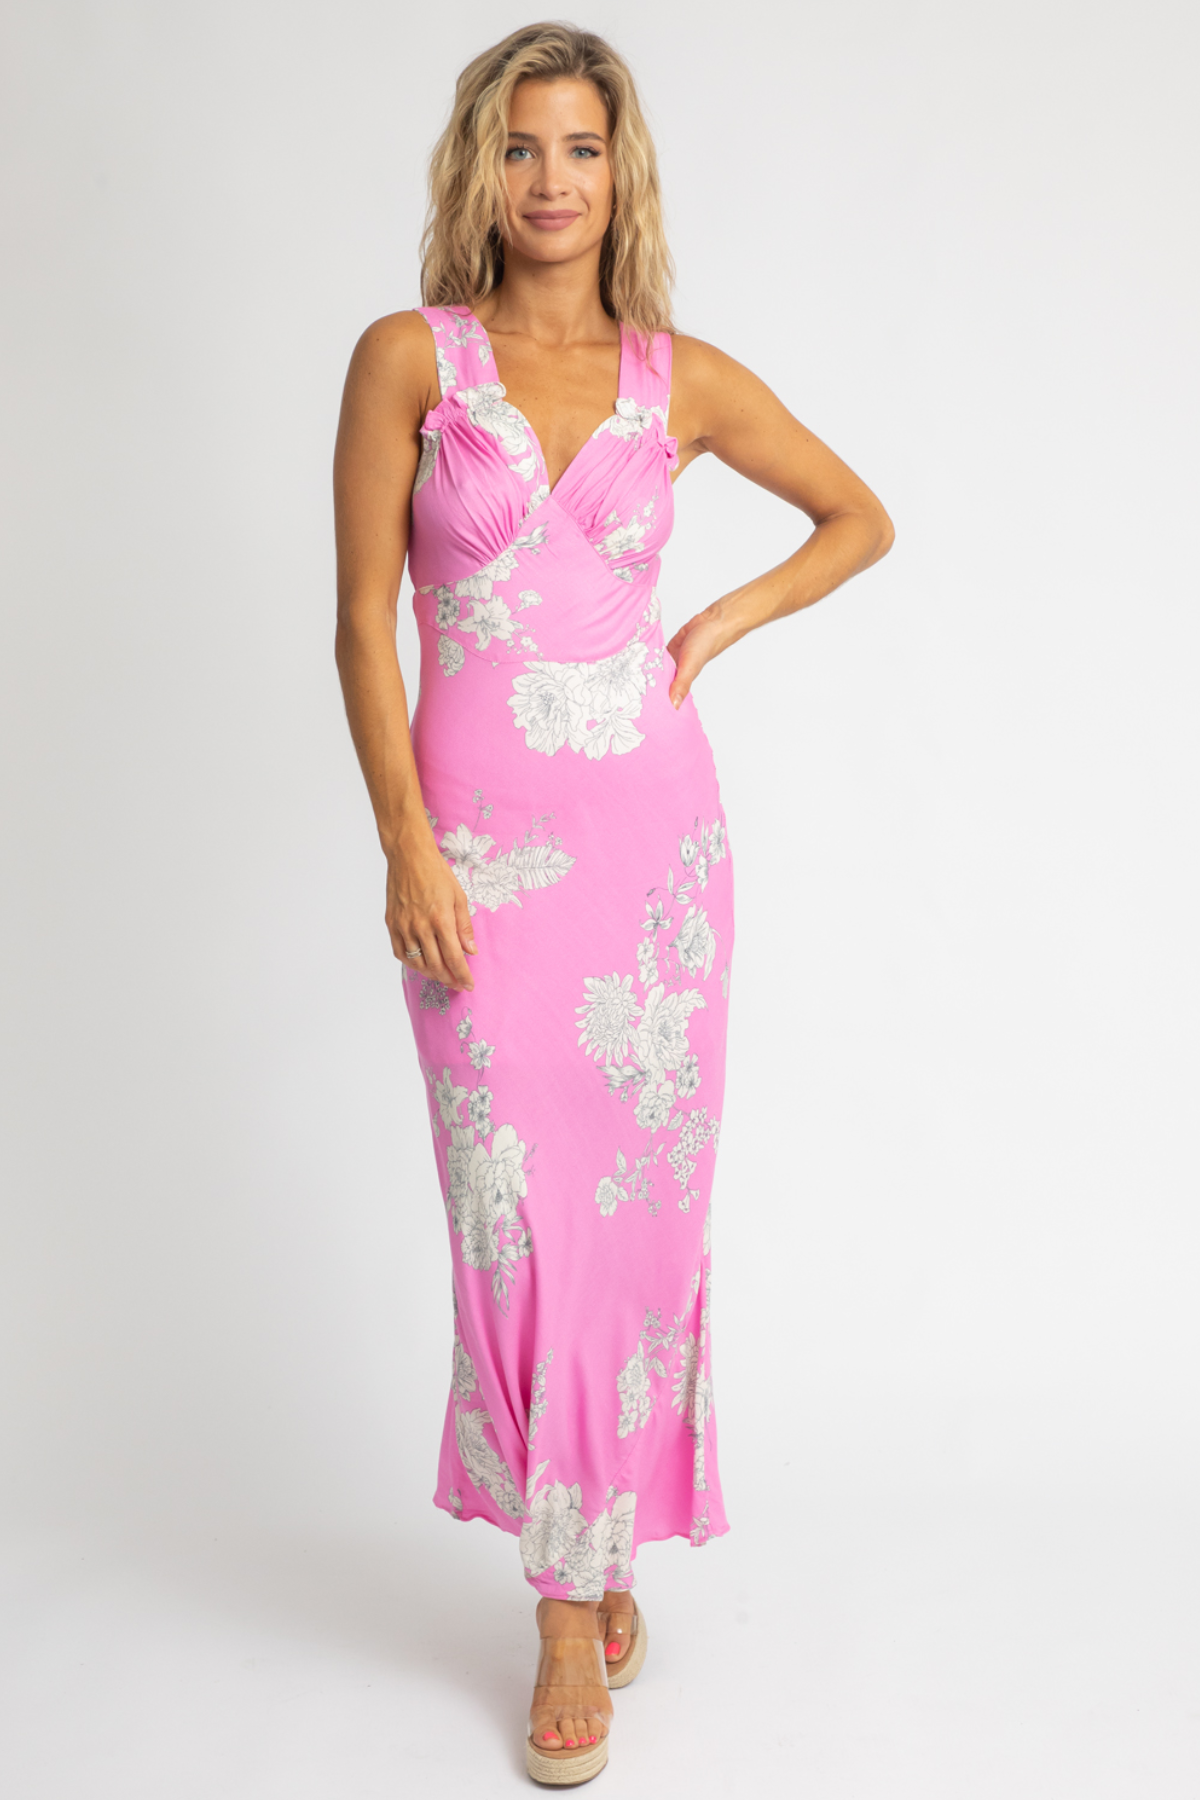 PINK WIDE STRAP FLORAL MAXI